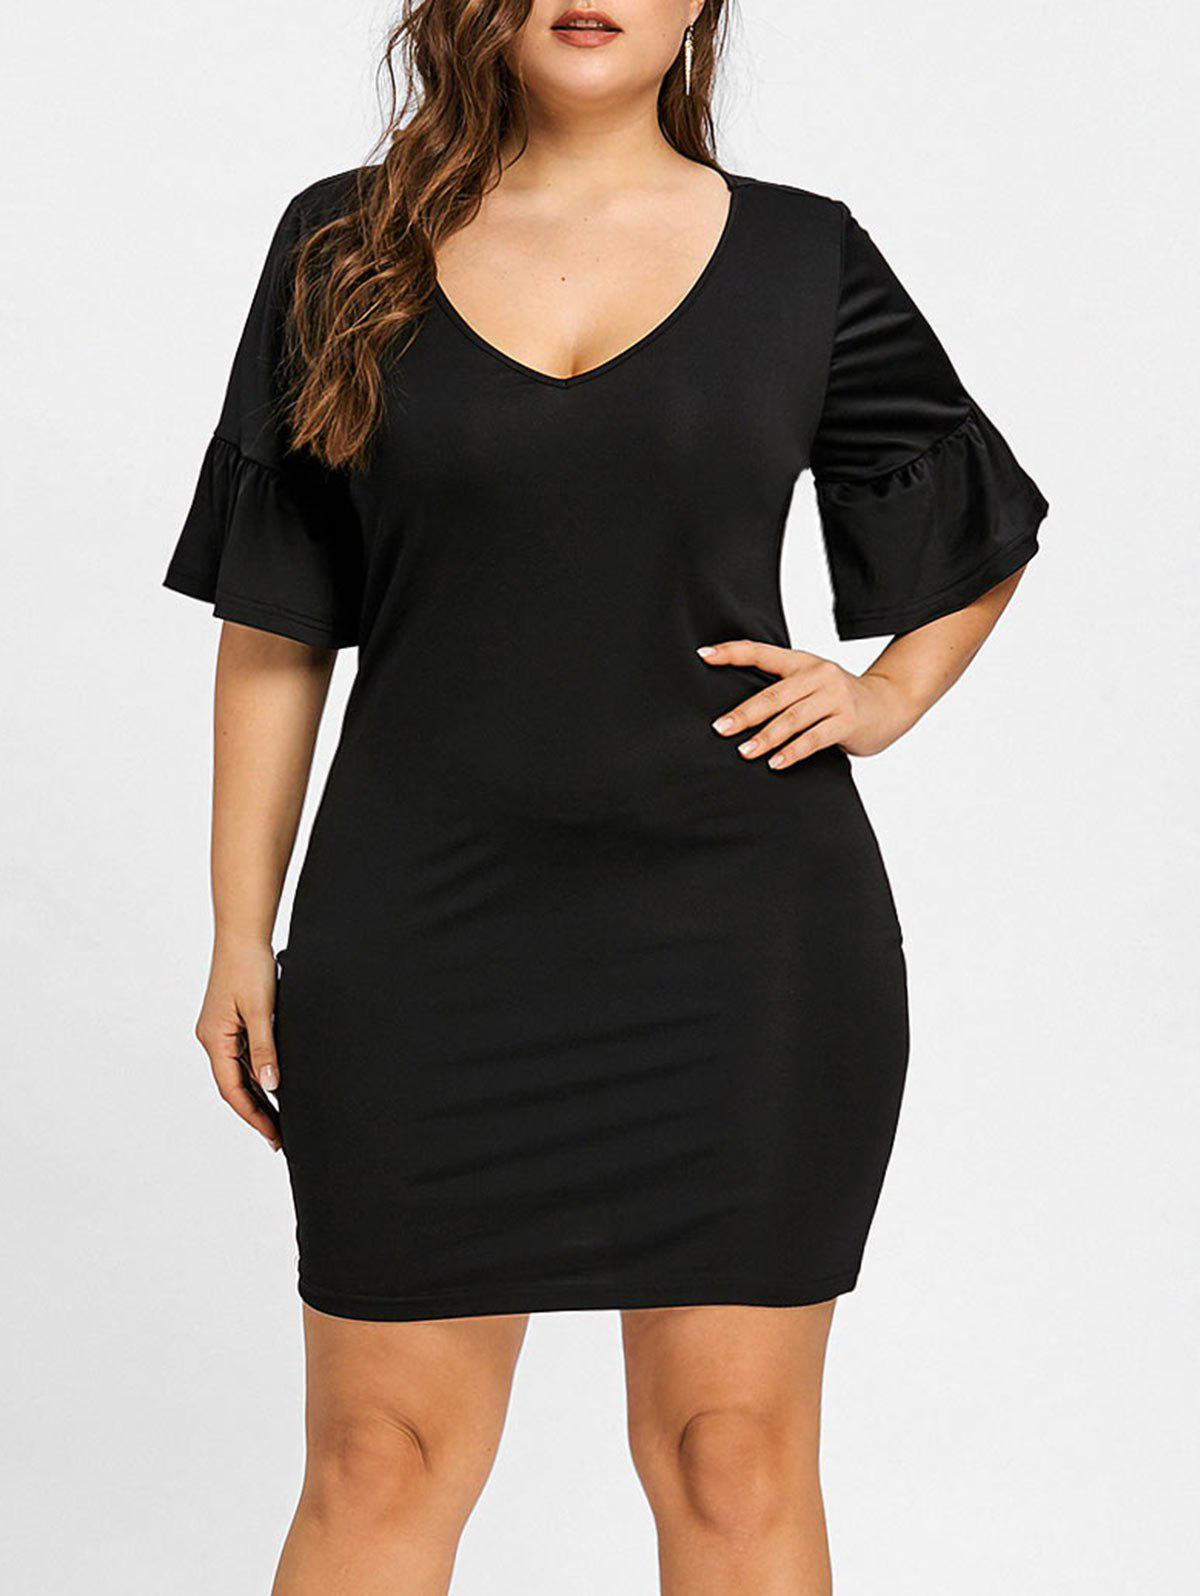 Fashion Bell Sleeve Plunging Plus Size Dress